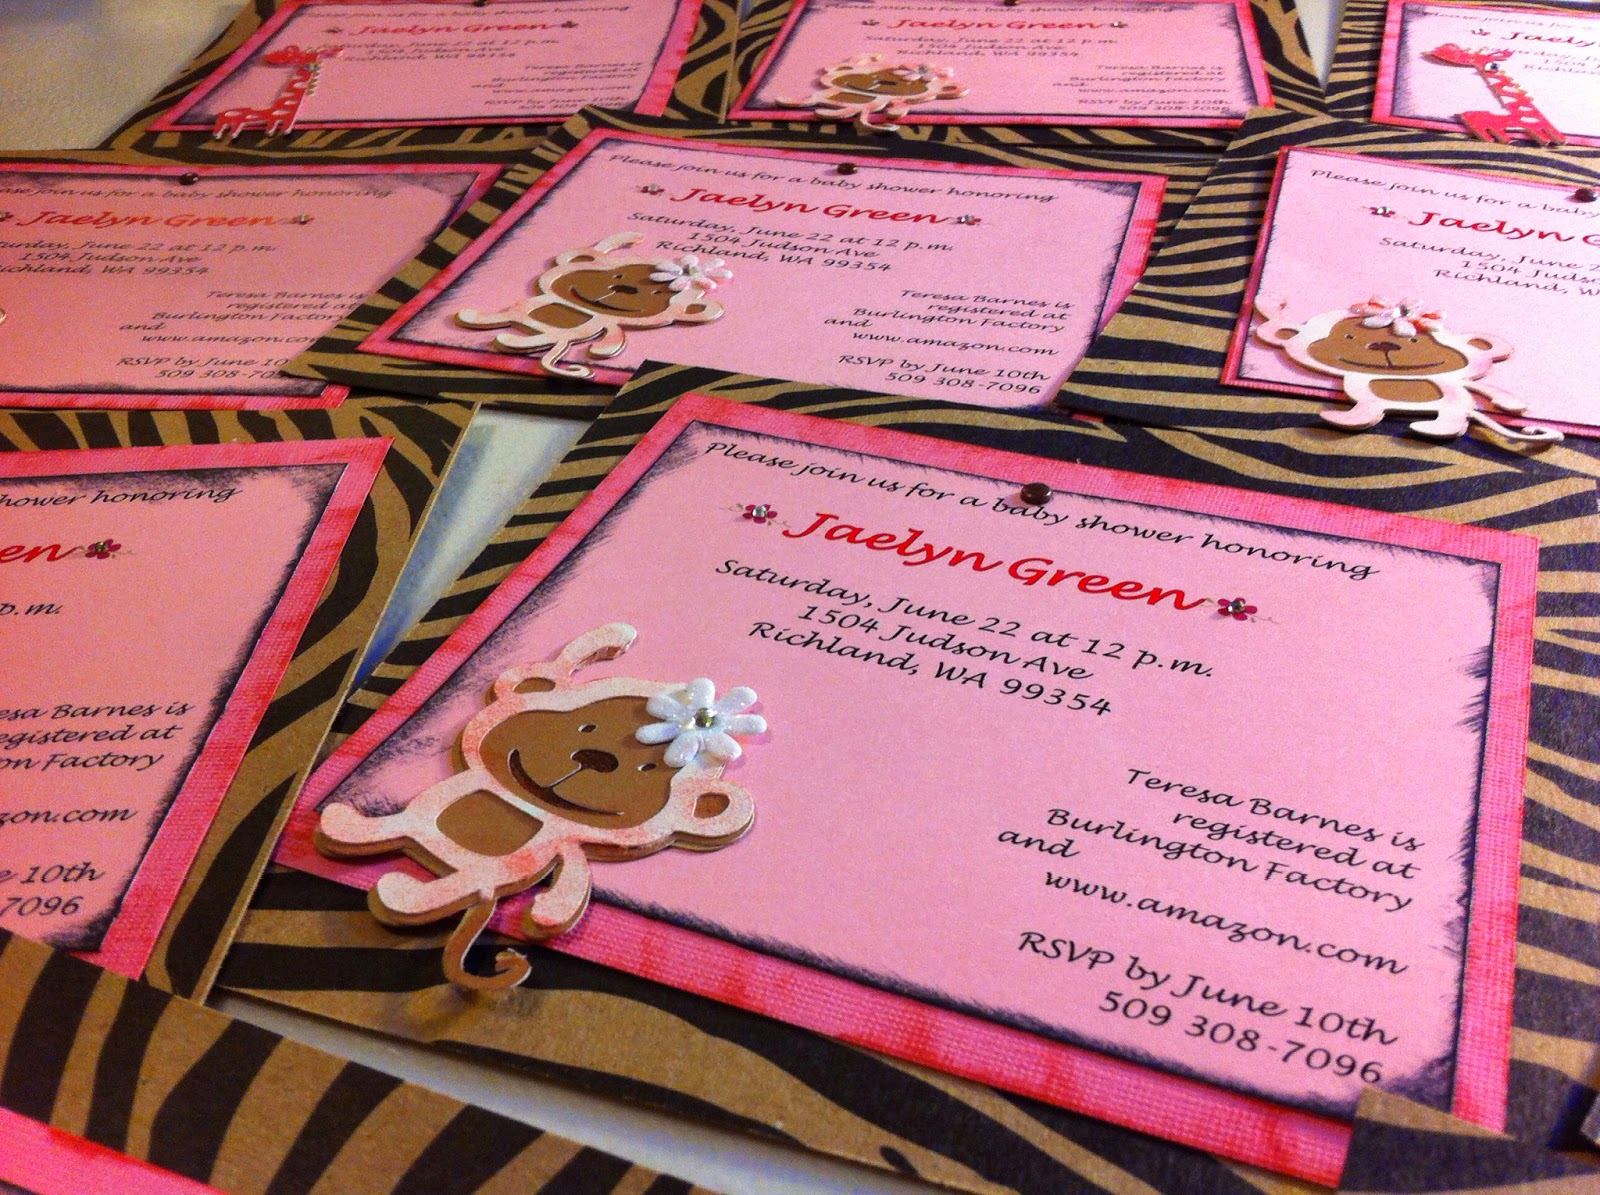 Scrapbook ideas using cricut - Using Our Cricut Cartridge Create A Critter To Make The Animals We Used Our Ctmh Sponge Daubers To Ink The Monkeys And Giraffes Pink Pink Pink